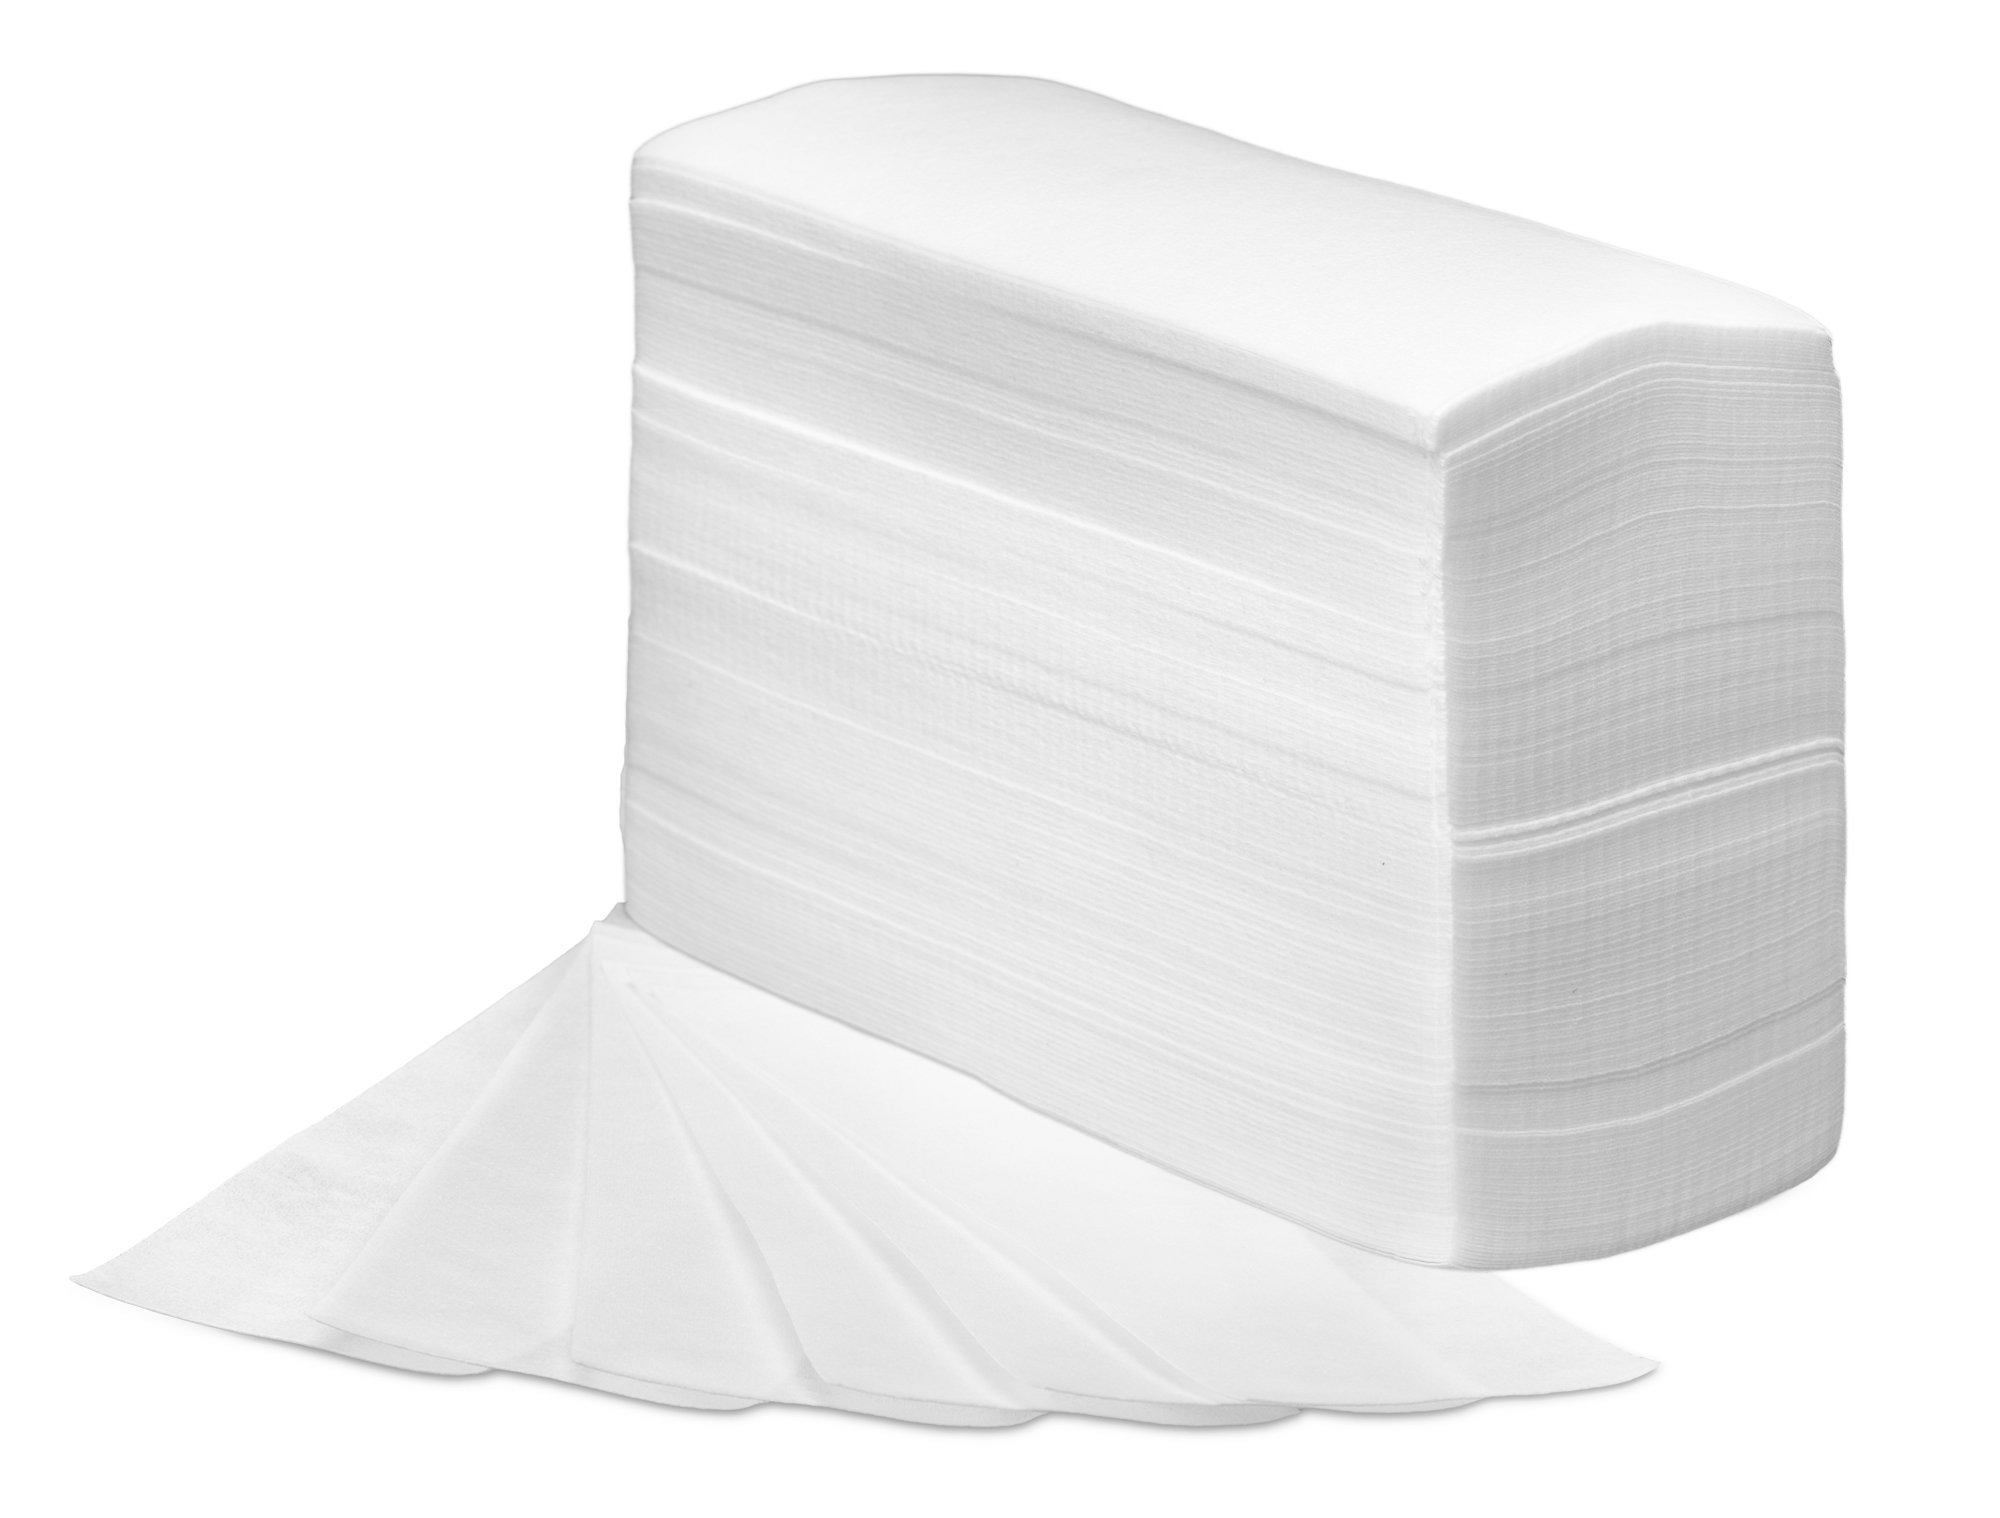 Tifara Beauty Non Woven Large 3 x 9 Body and Facial Wax Strips, Pack of 250